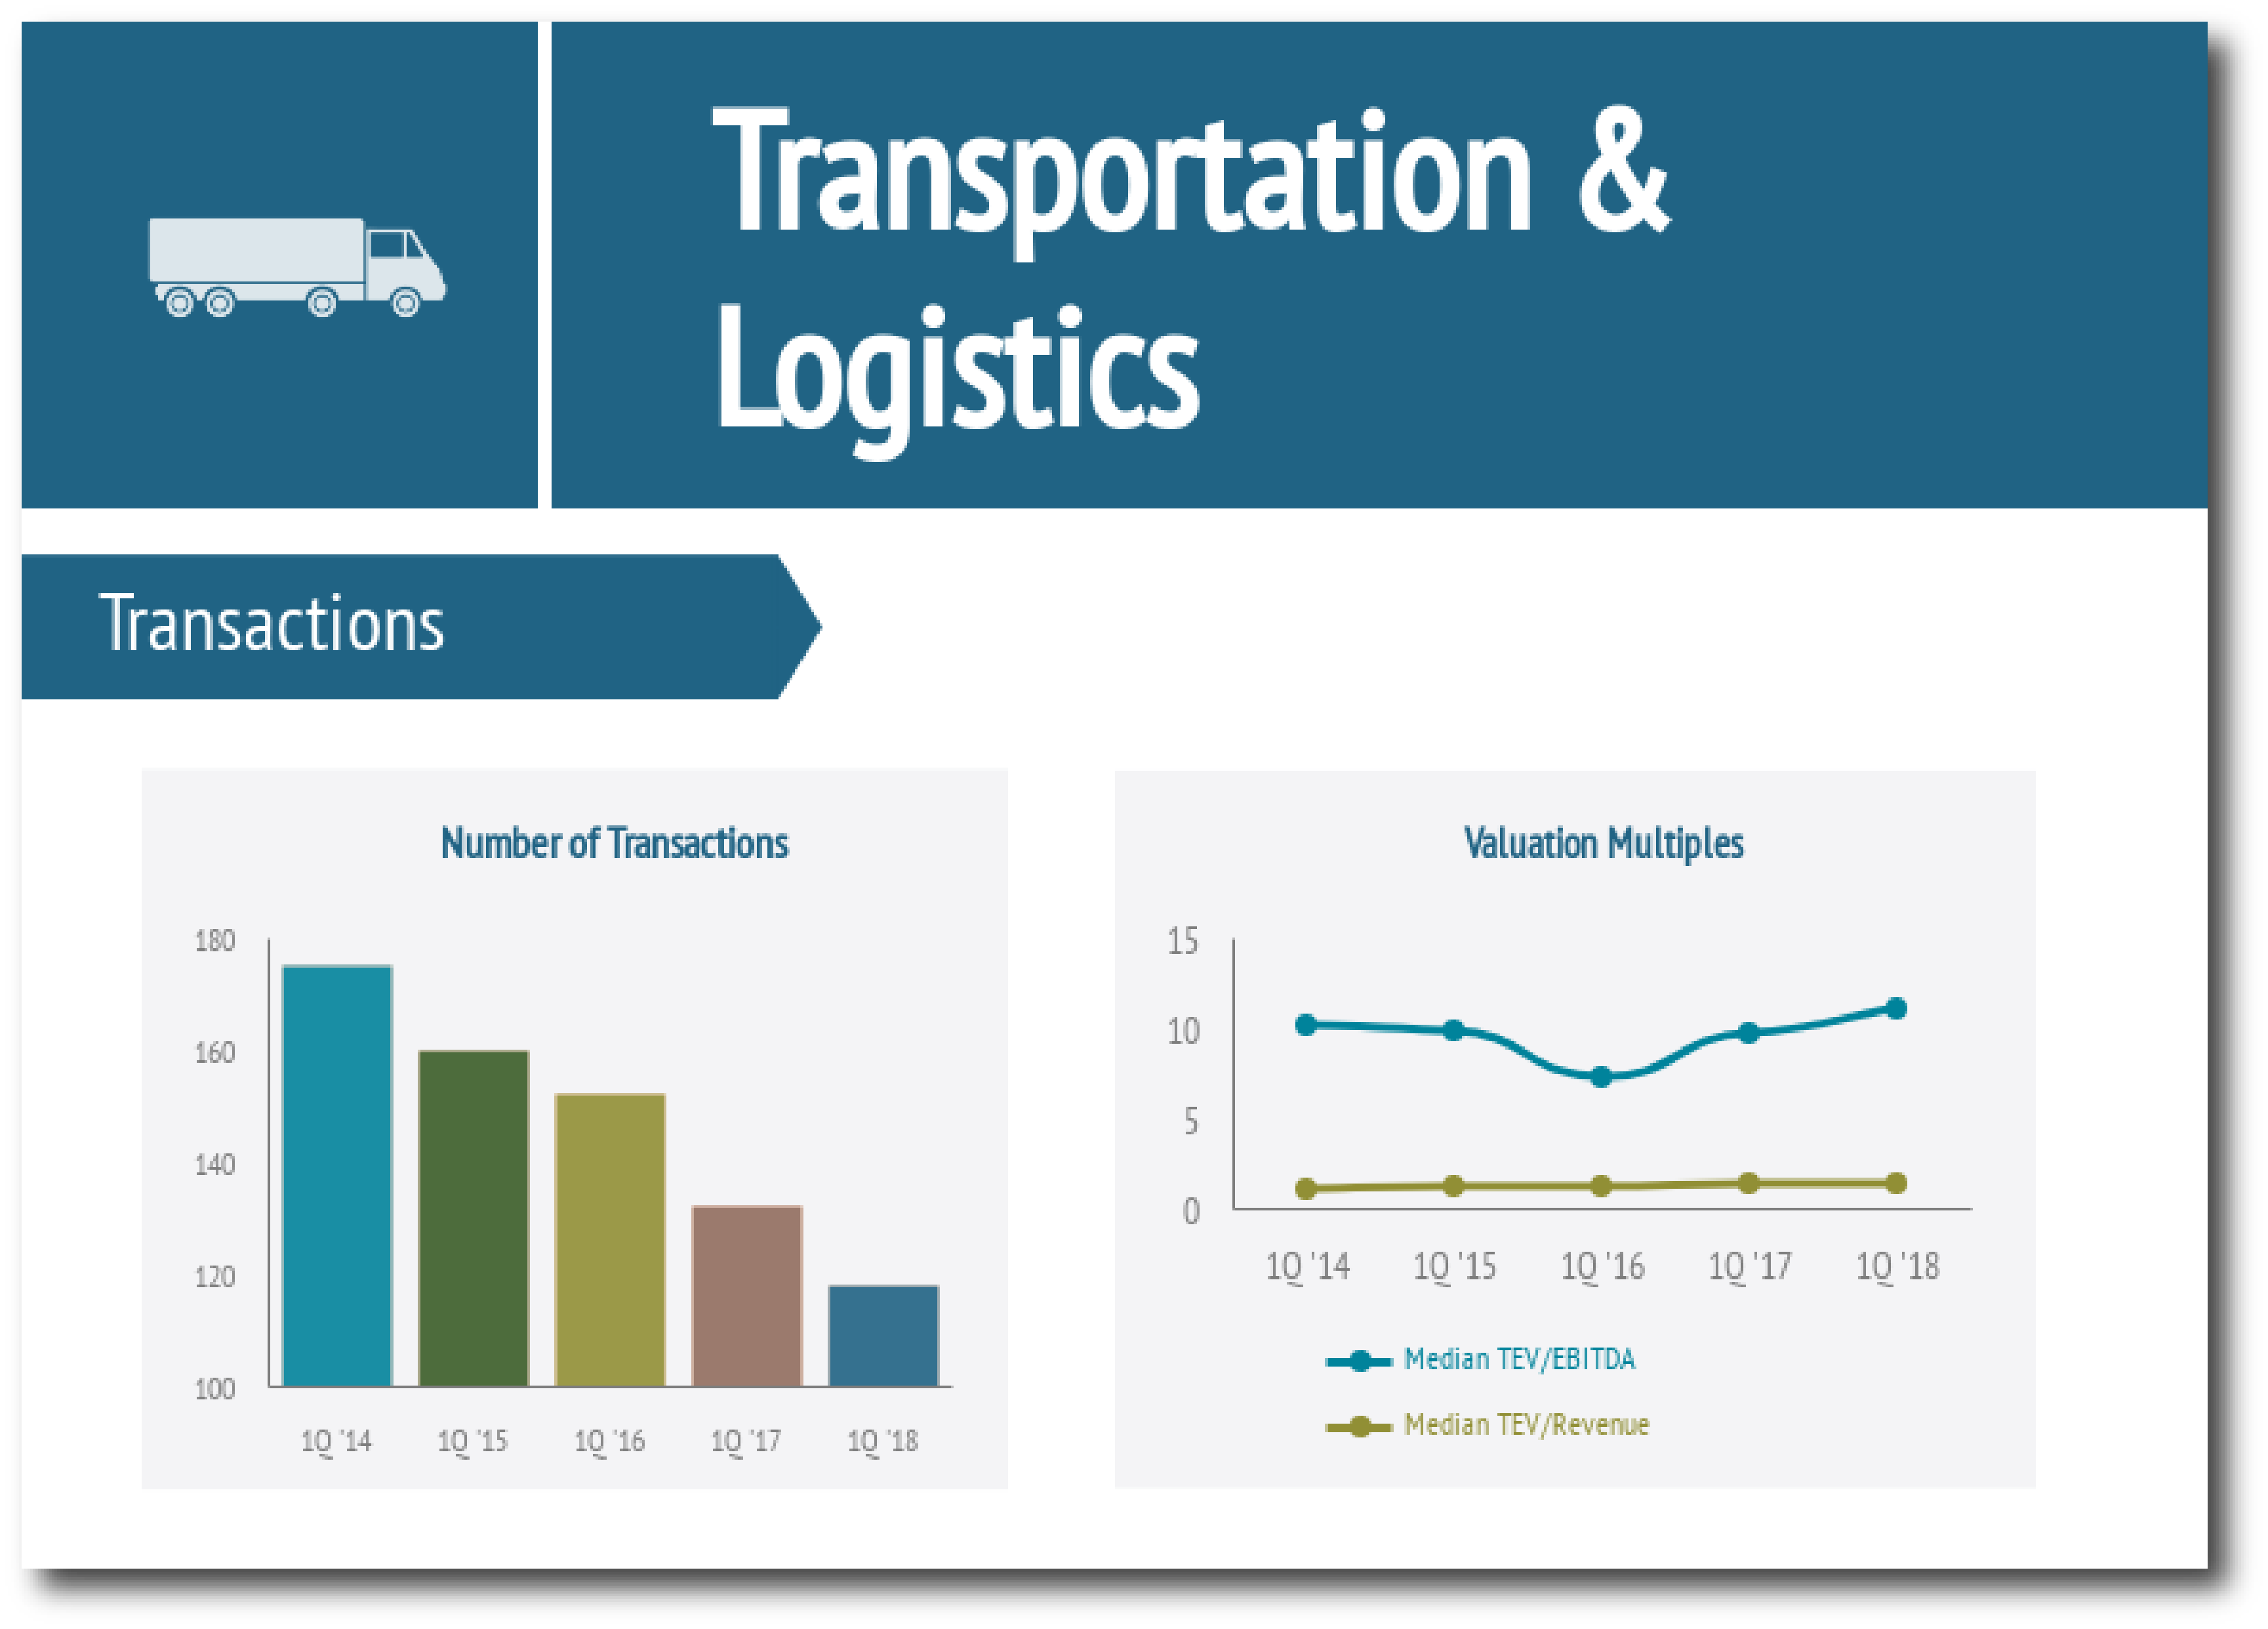 Transportation & Logistics Industry Report